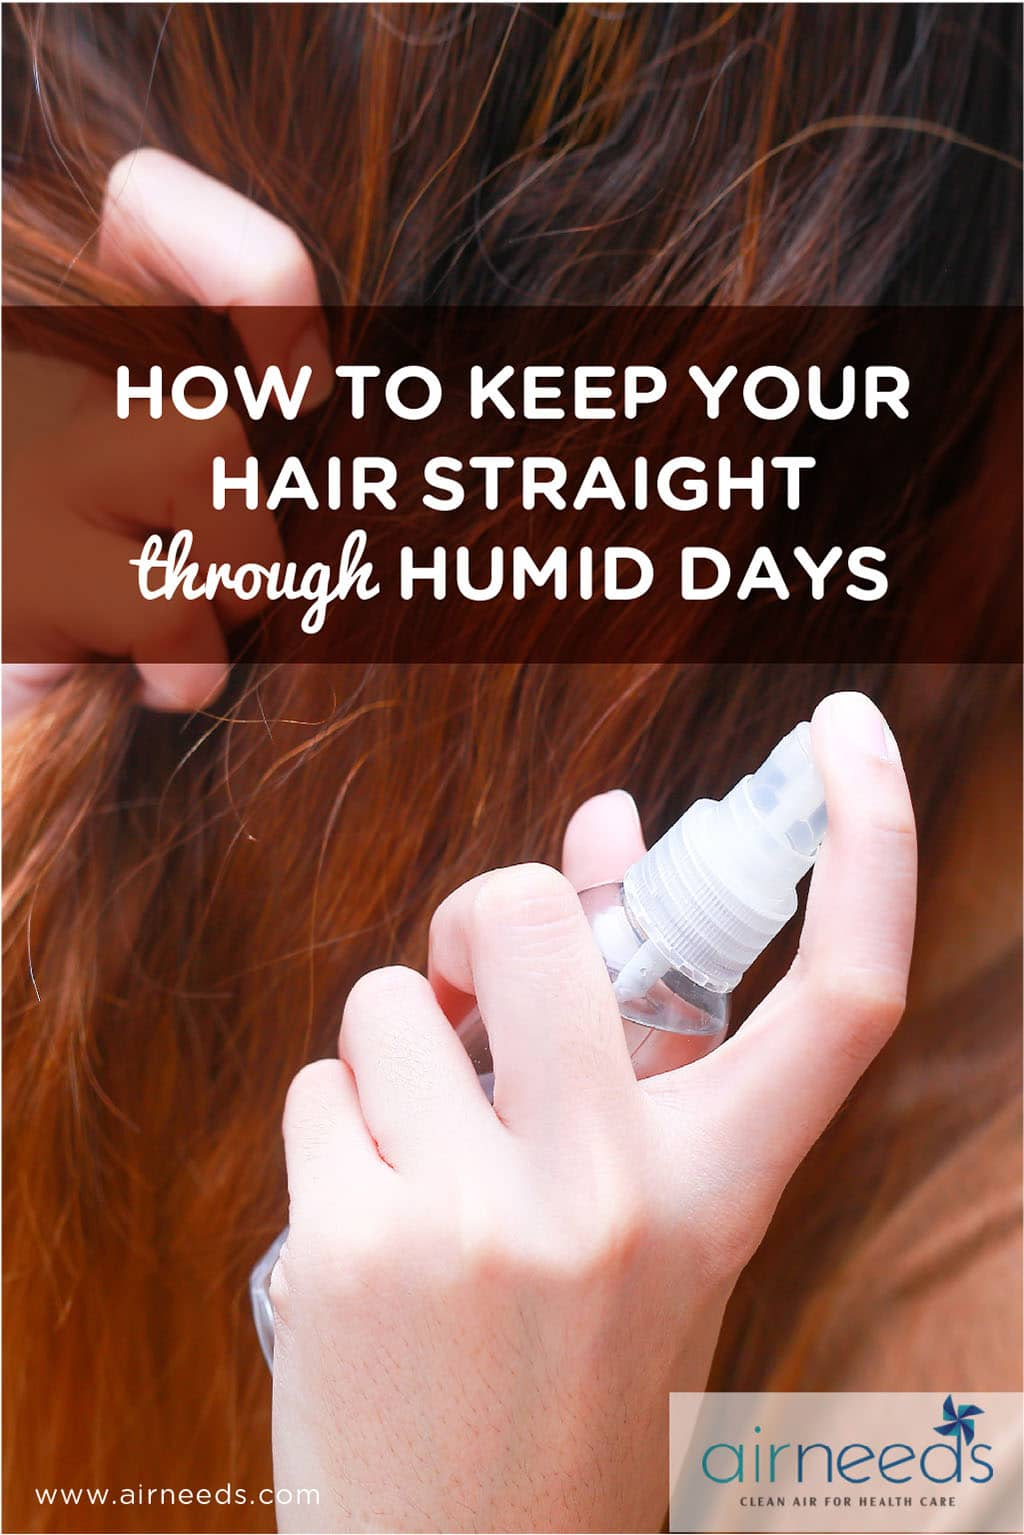 HOW TO KEEP YOUR HAIR STRAIGHT THROUGH HUMID DAYS